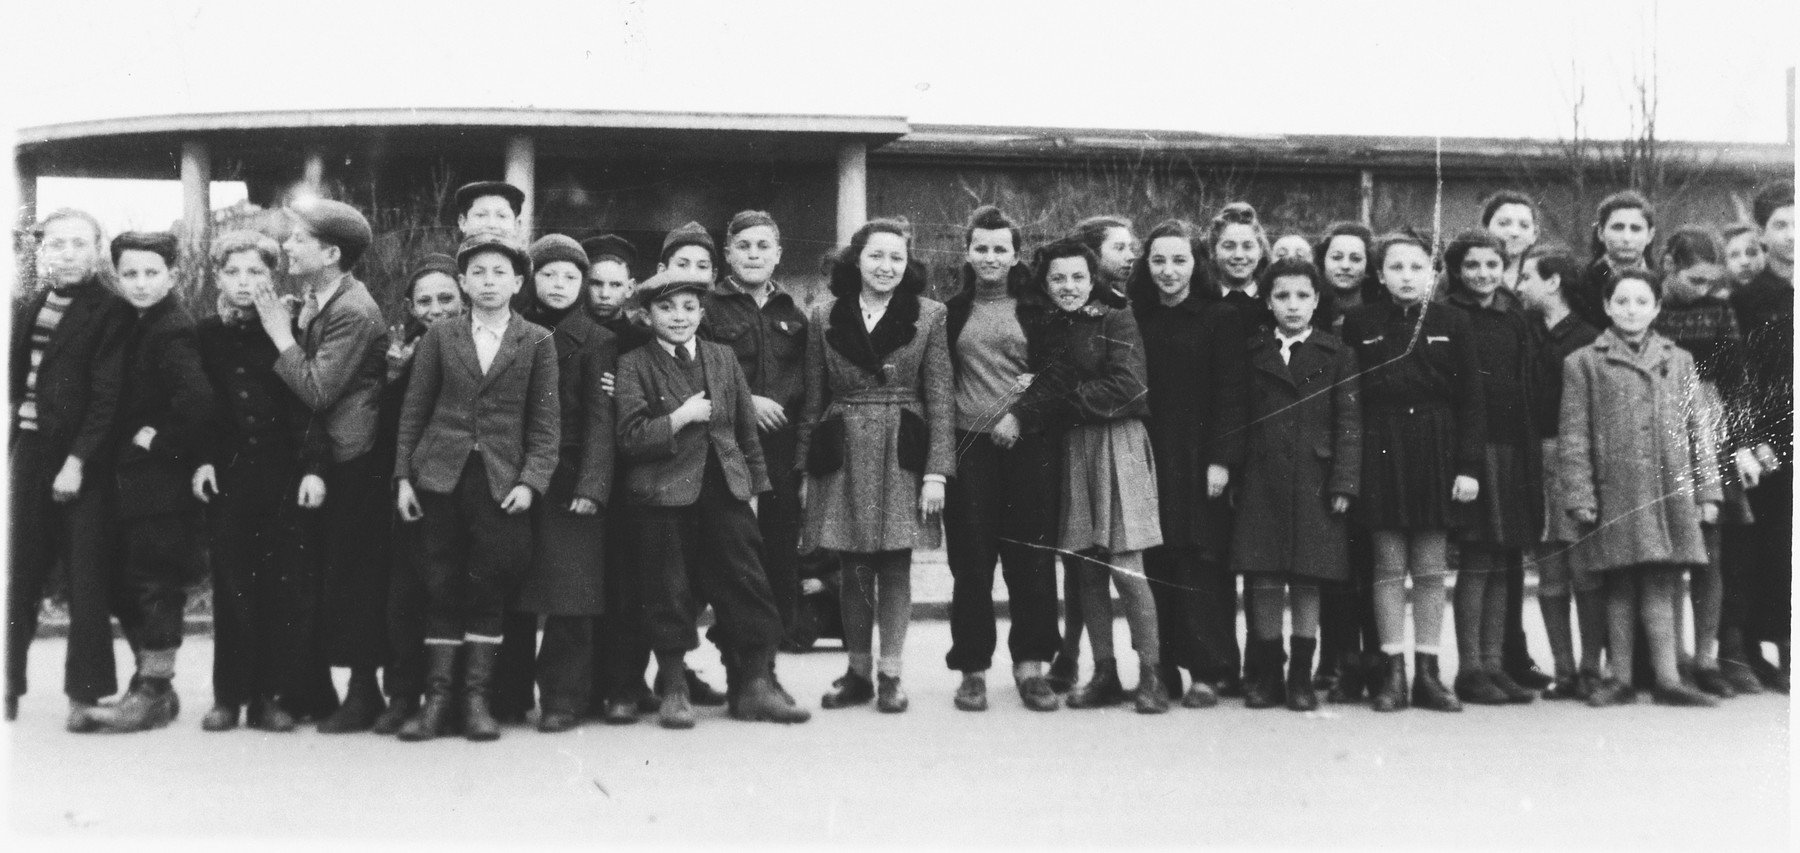 Group portrait of the Betar Zionist youth group in the Eschwege displaced persons' camp.